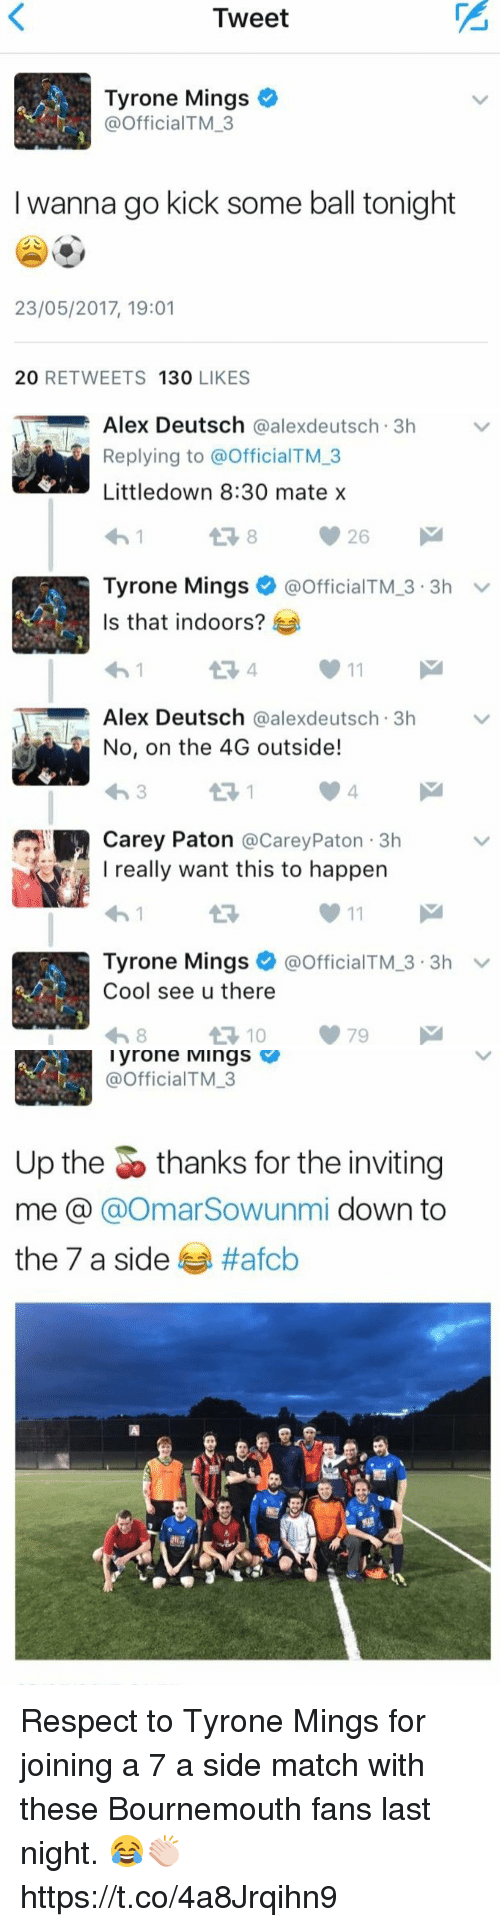 Respect, Soccer, and Cool: Tweet  Tyrone Mings  @Official M 3  I wanna go kick some ball tonight  23/05/2017, 19:01  20 RETWEETS  130  LIKES   Alex Deutsch  @alexdeutsch 3h v  Replying to @officialTM 3  Little down 8:30 mate x  Tyrone Mings  @official TM-3 V  3.3h  Is that indoors?  Alex Deutsch  @ale deutsch 3h  v  No, on the 4G outside!  Carey Paton  @Carey 3h  Paton really want this to happen  11  Tyrone Mings  officialTM 3.3h  v  Cool see u there  79  10   Tyrone Mings  @Official TM 3  Up the thanks for the inviting  me a  @Omar Sowunmi down to  the 7 a side  ttafob Respect to Tyrone Mings for joining a 7 a side match with these Bournemouth fans last night. 😂👏🏻 https://t.co/4a8Jrqihn9